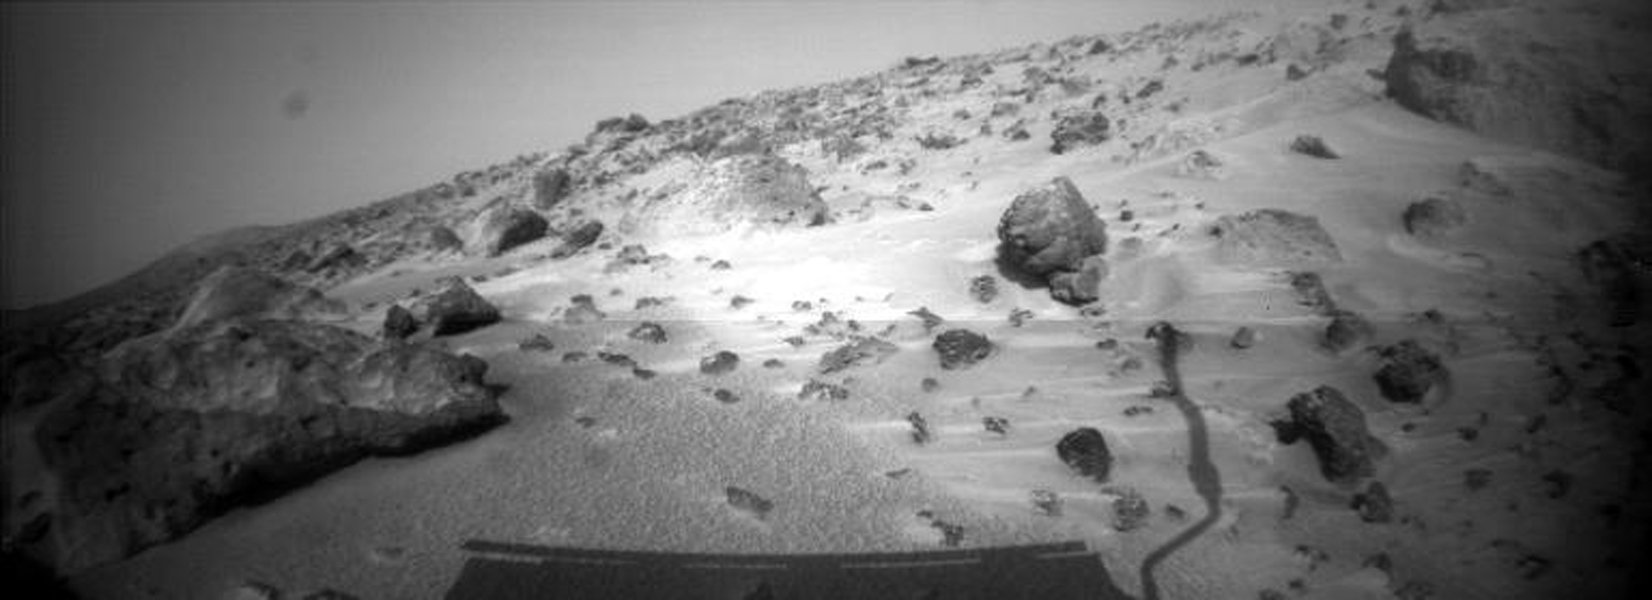 This image taken on Sol 74 ( September 17) from NASA's Sojourner rover's right front camera shows areas of the Pathfinder landing site never before seen. Sol 1 began on July 4, 1997.